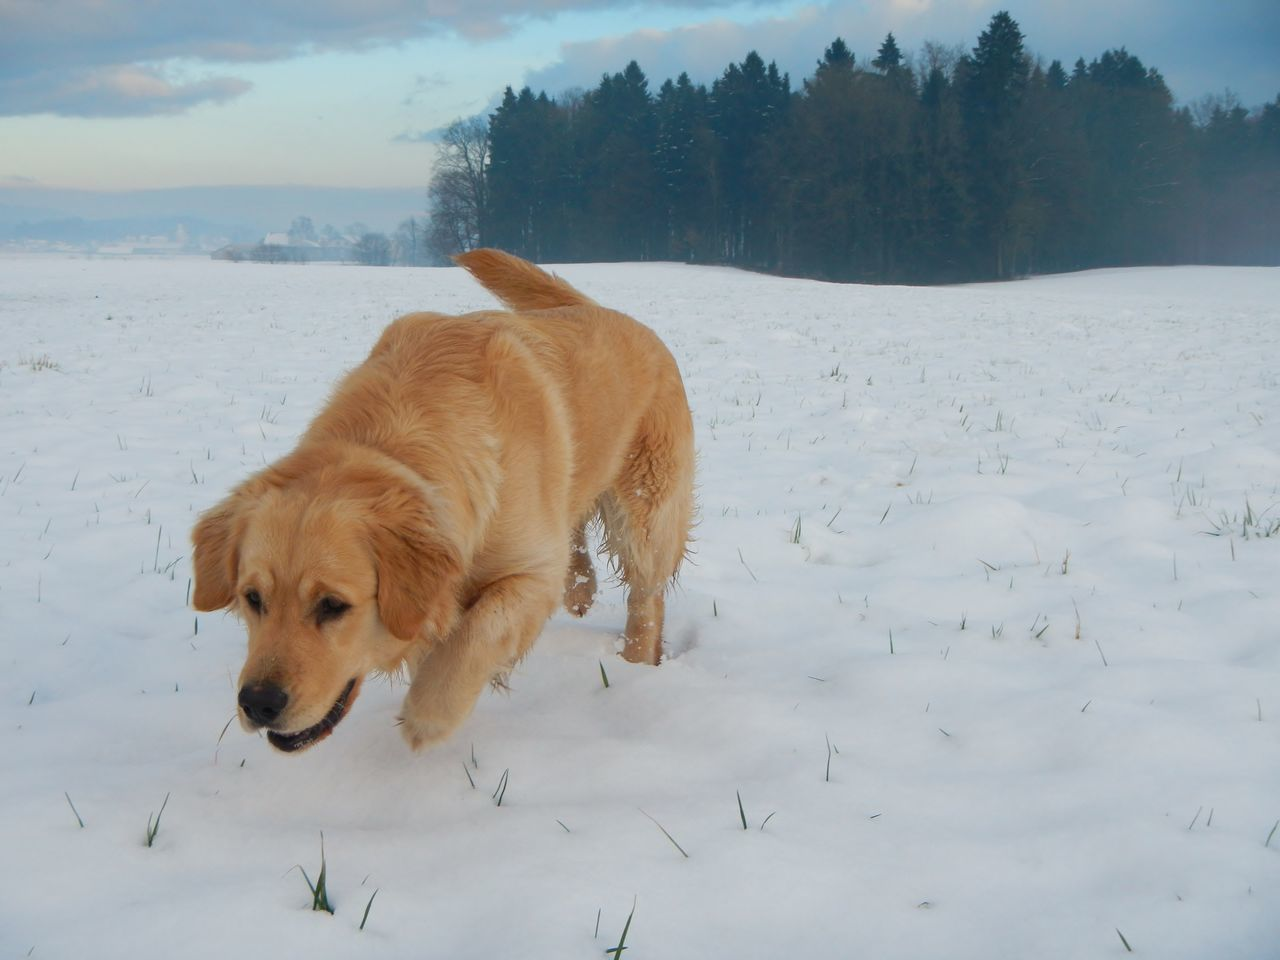 Activity Dog Dog Love Dogs In The Snow Dogs Of EyeEm Dogs Of Winter EyeEm Gallery EyeEm Nature Lover Golden Retriever Jumping ! Natural Beauty Nature Nature_collection Nature On Your Doorstep Nature Photography Nature_collection Outdoor Photography Outdoors Running Dog Snowscape Capturing Movement Photography In Motion